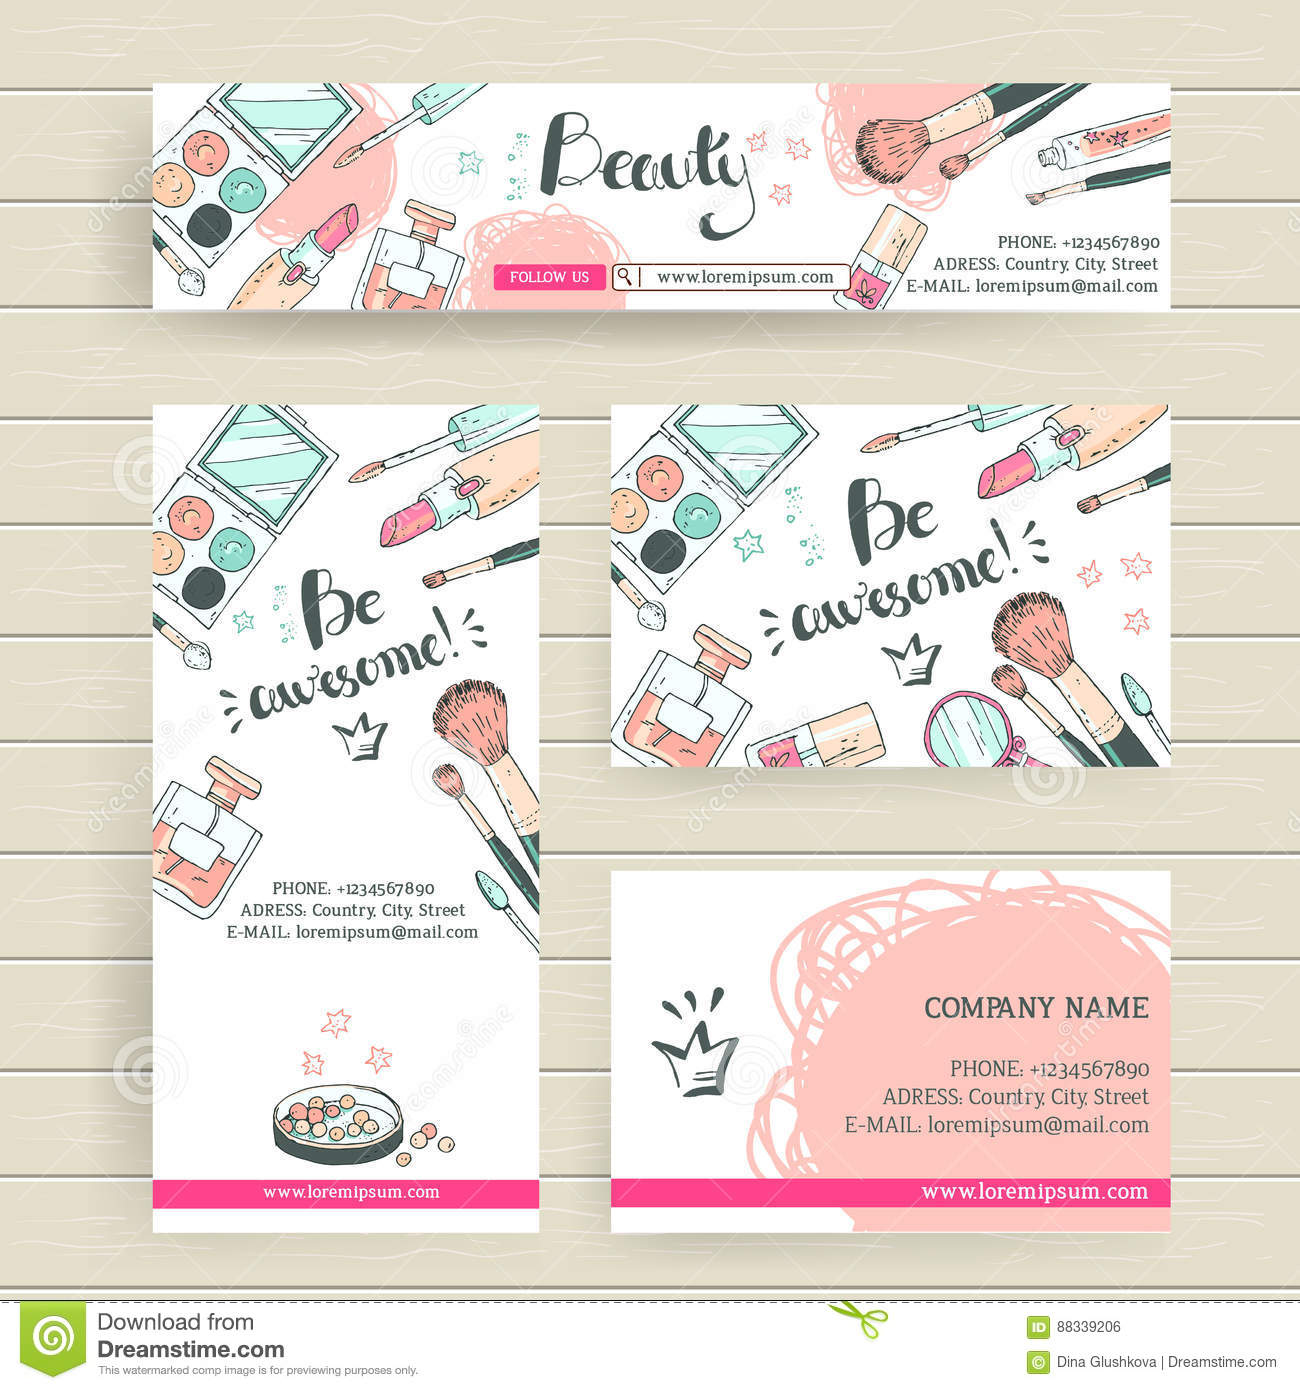 Vector Ready Design Template For Makeup Artist Makeup Studio Or